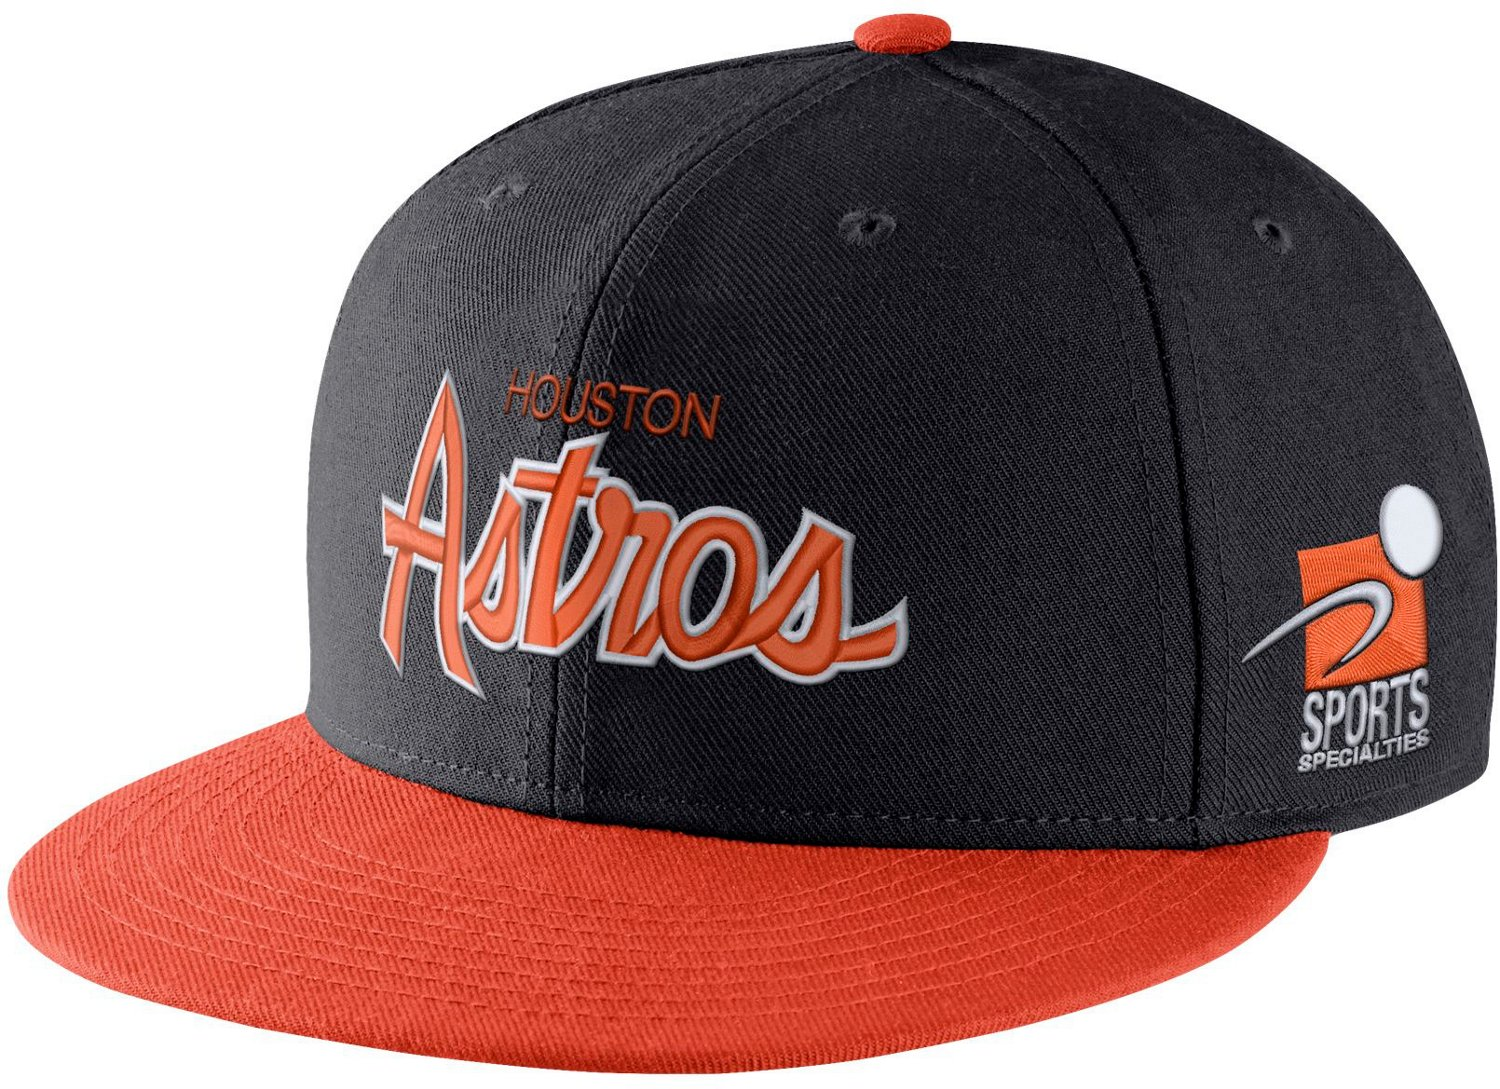 b431ca1bc11 Display product reviews for Nike Men s Houston Astros Sports Specialty  Alternate Cap